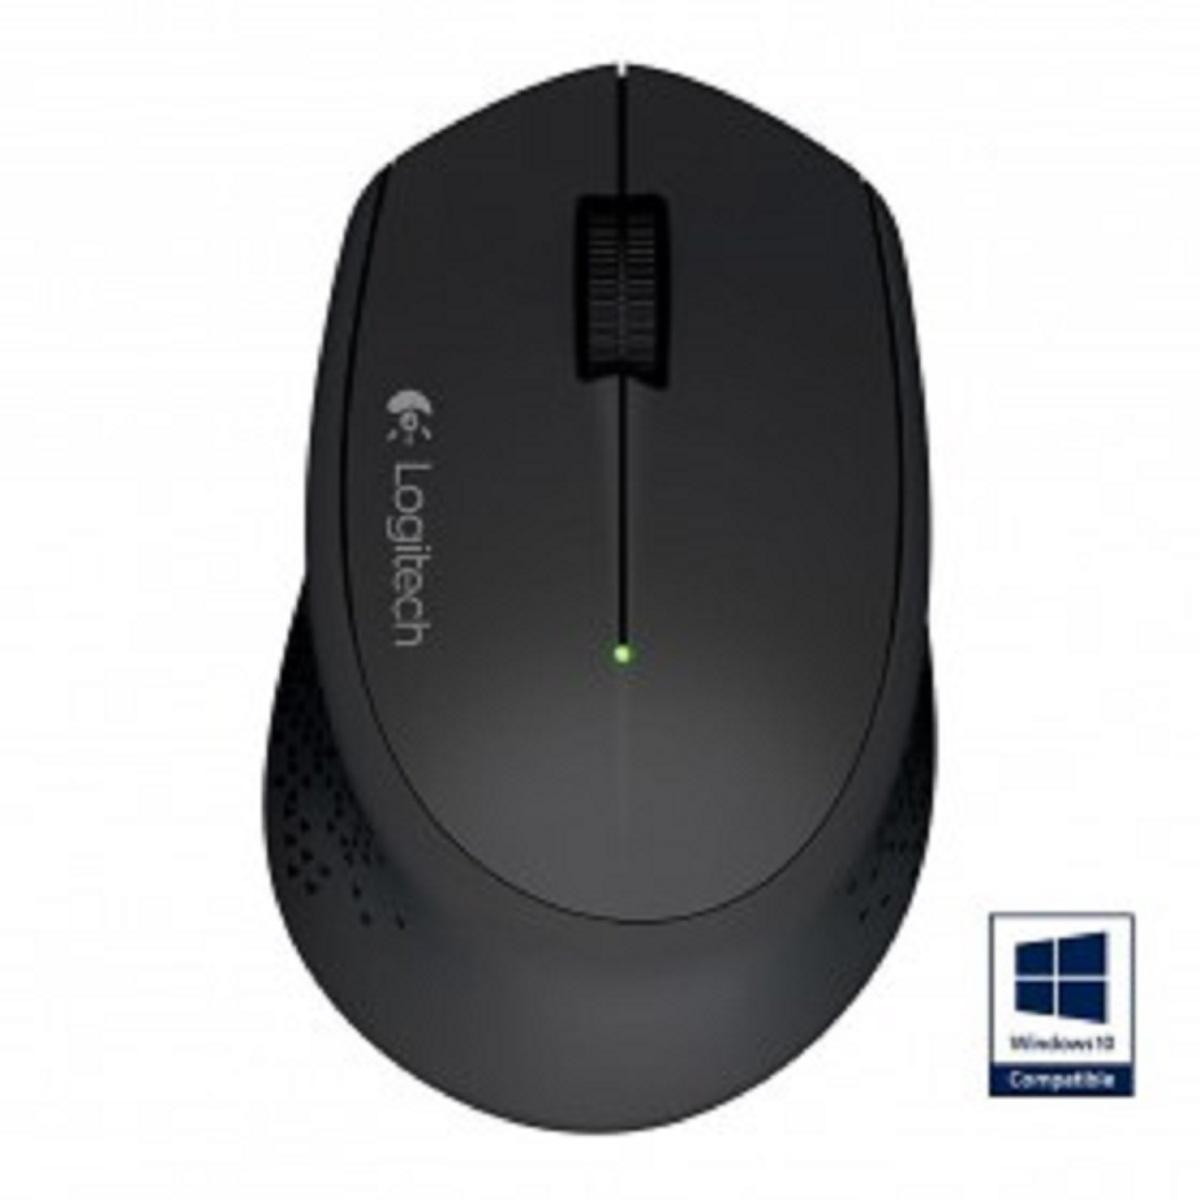 Mouse Logitech M280 Mouse Wireless